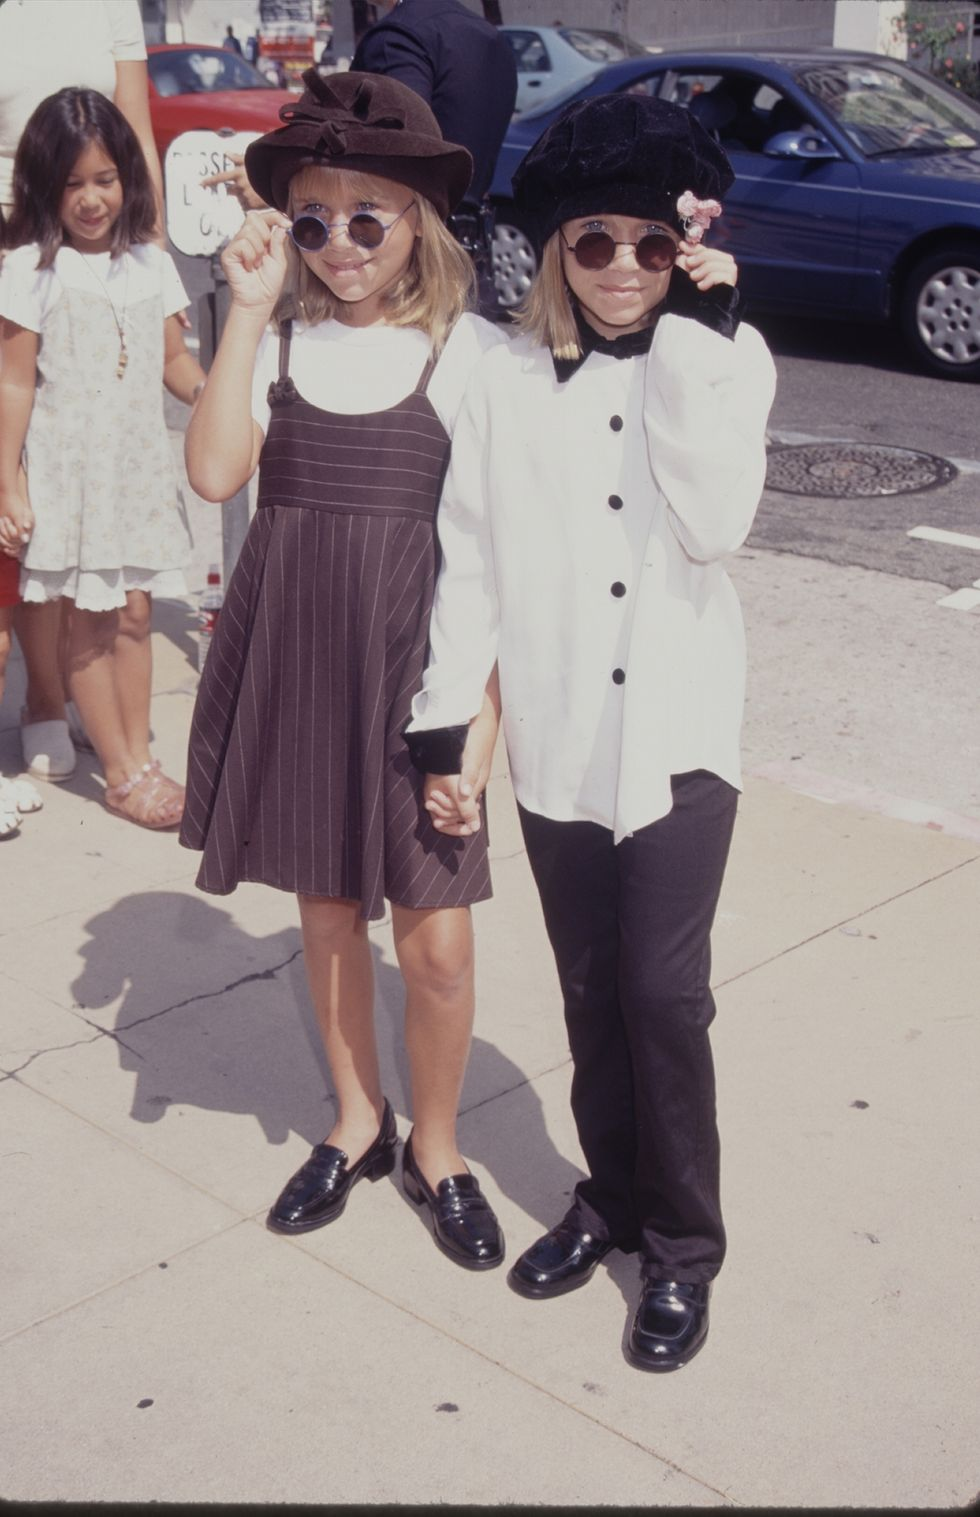 March 18, 1995 Wearing black and white ensembles with black round sunglasses.